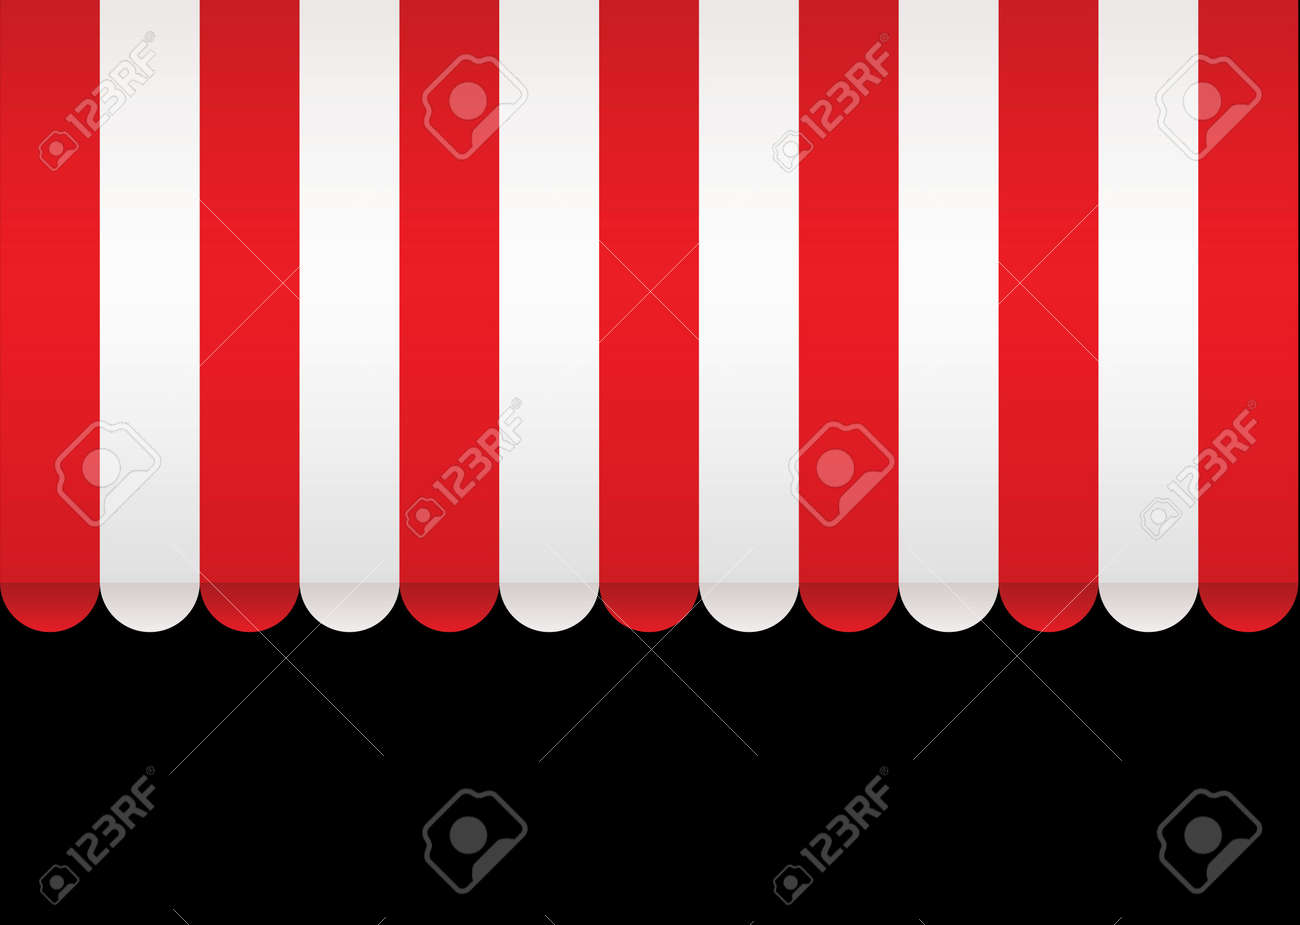 Red and white strip shop awning with space for company name - 8238807